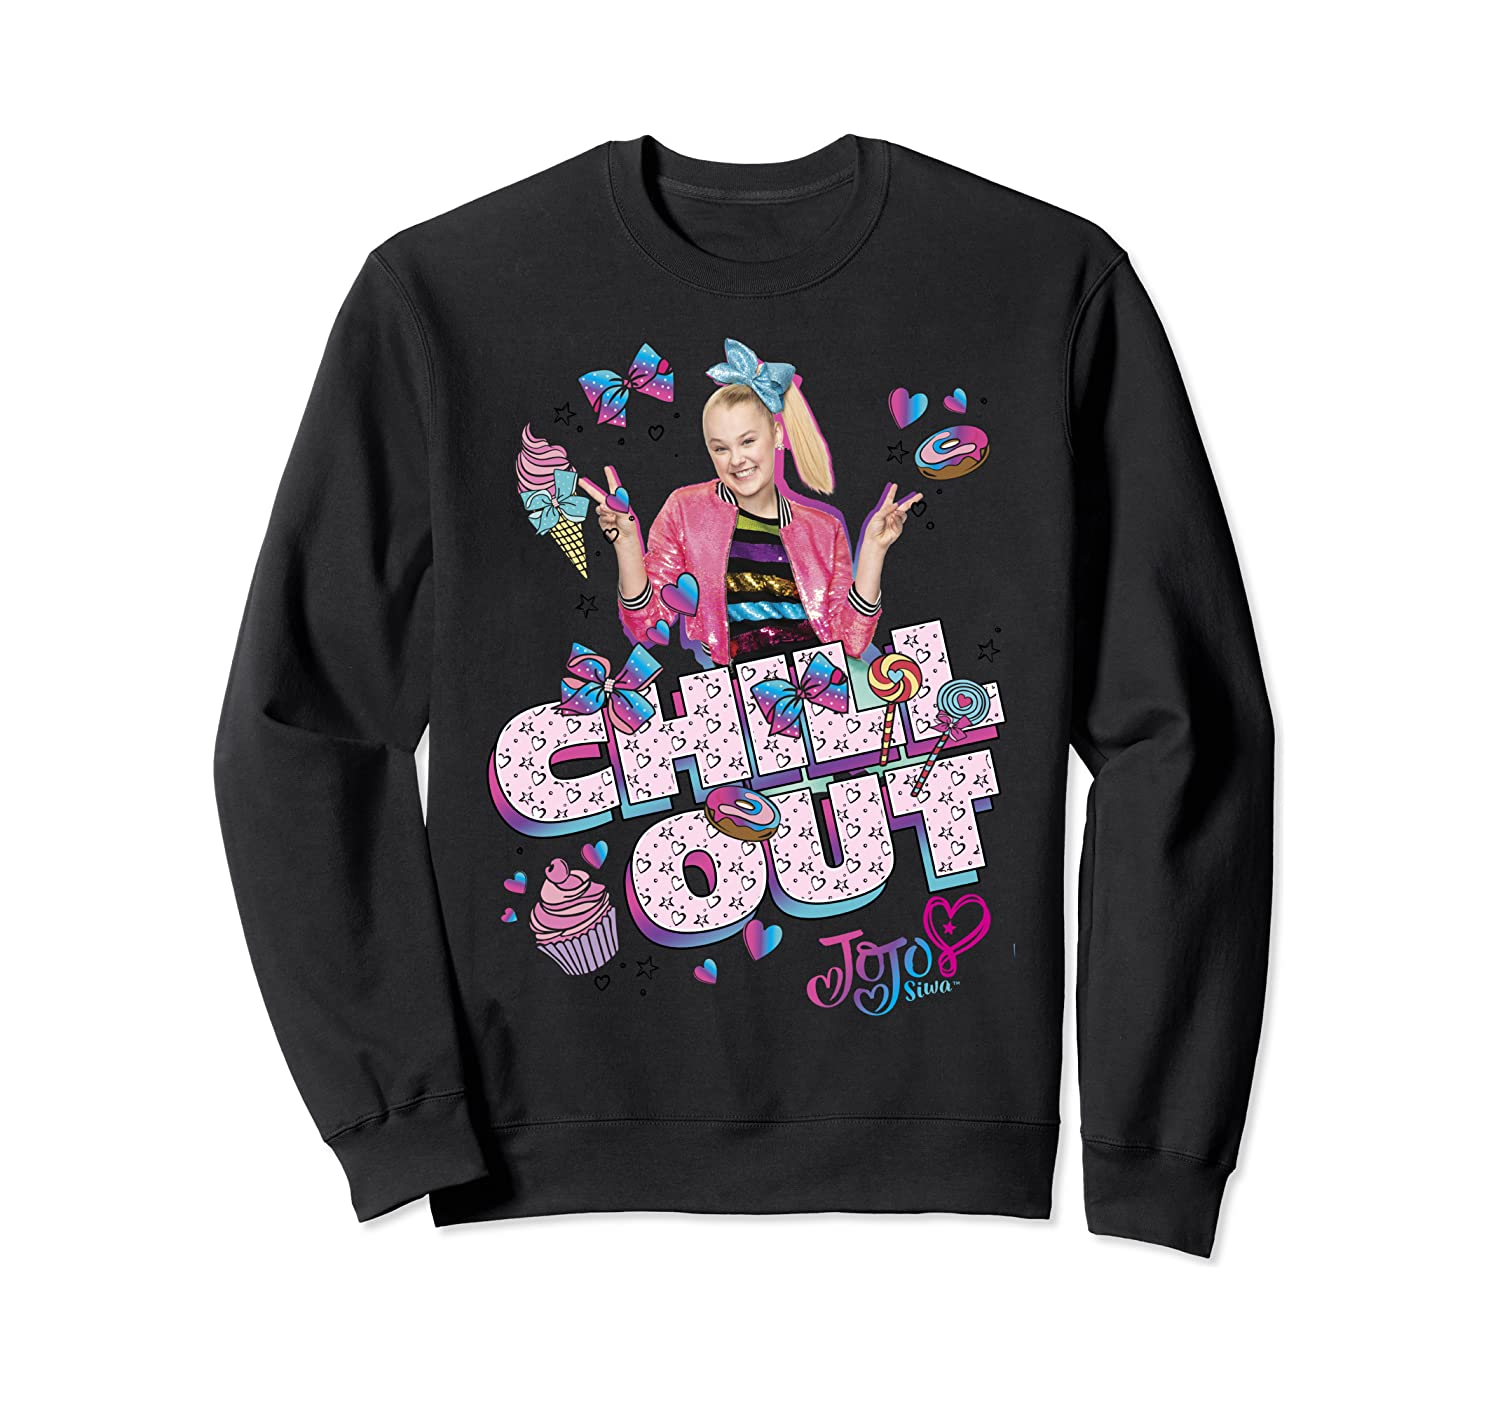 Nickelodeon JoJo Siwa Chill Out Dessert Snacks Sweatshirt